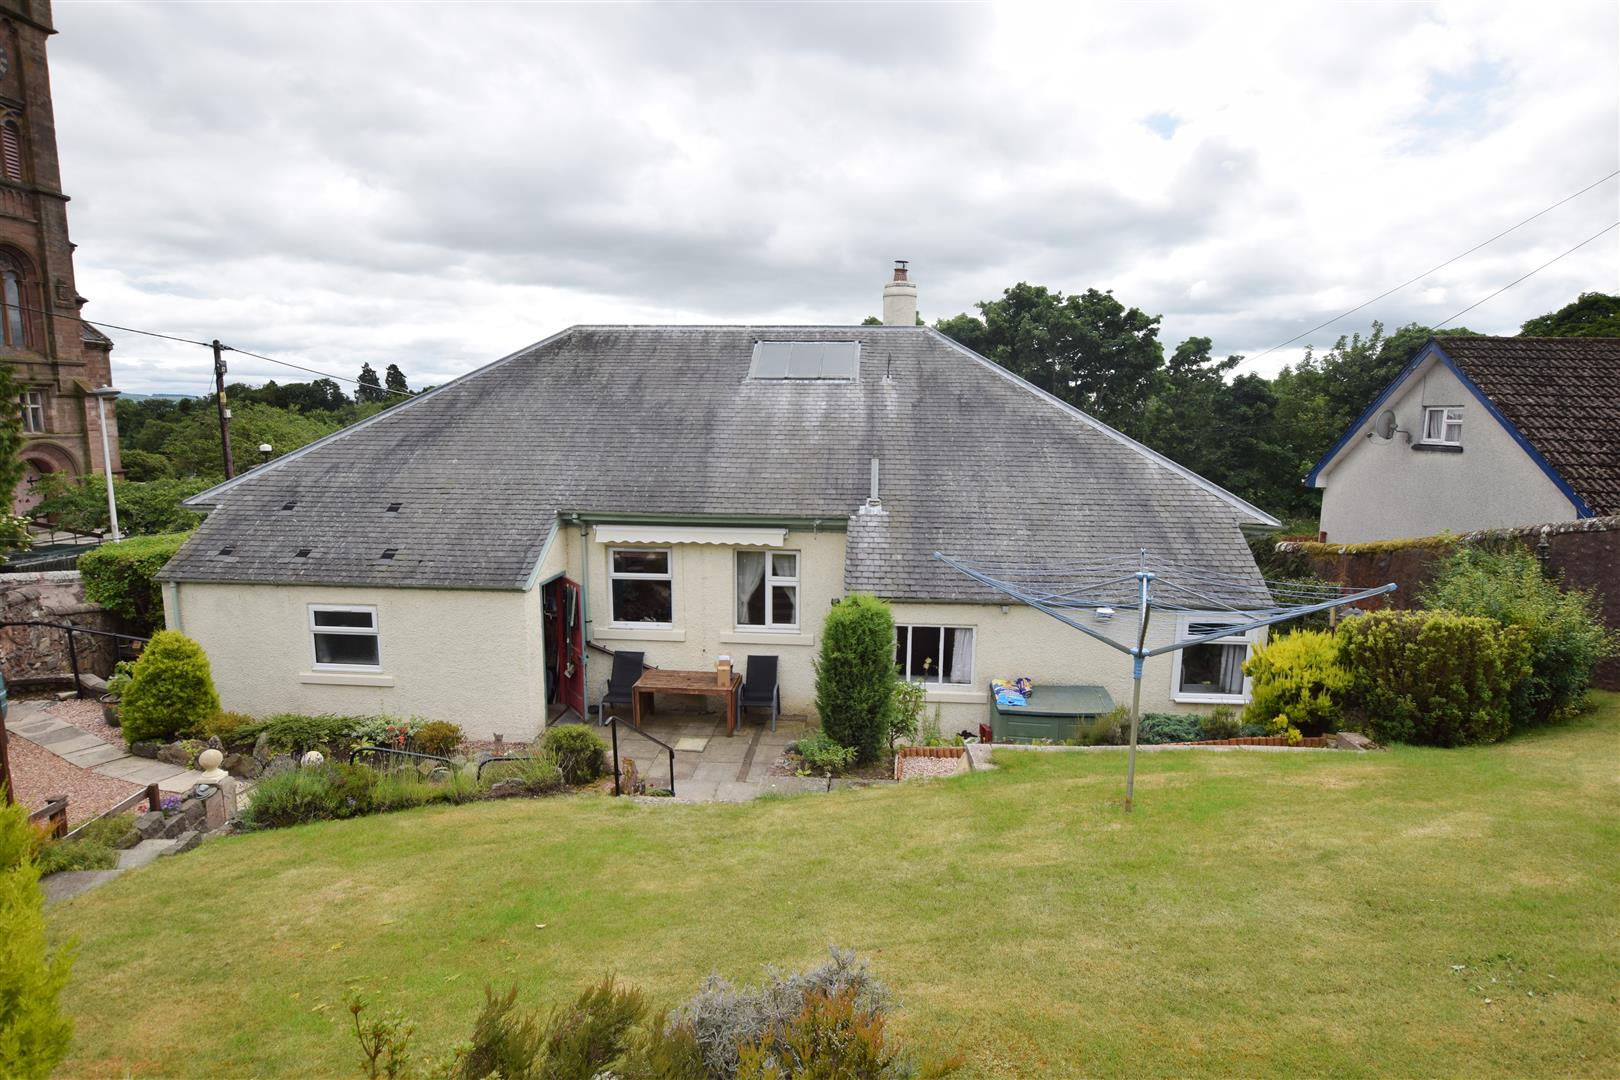 St. Andrew, Bamff Road, Alyth, Blairgowrie, Perthshire, PH11 8DS, UK